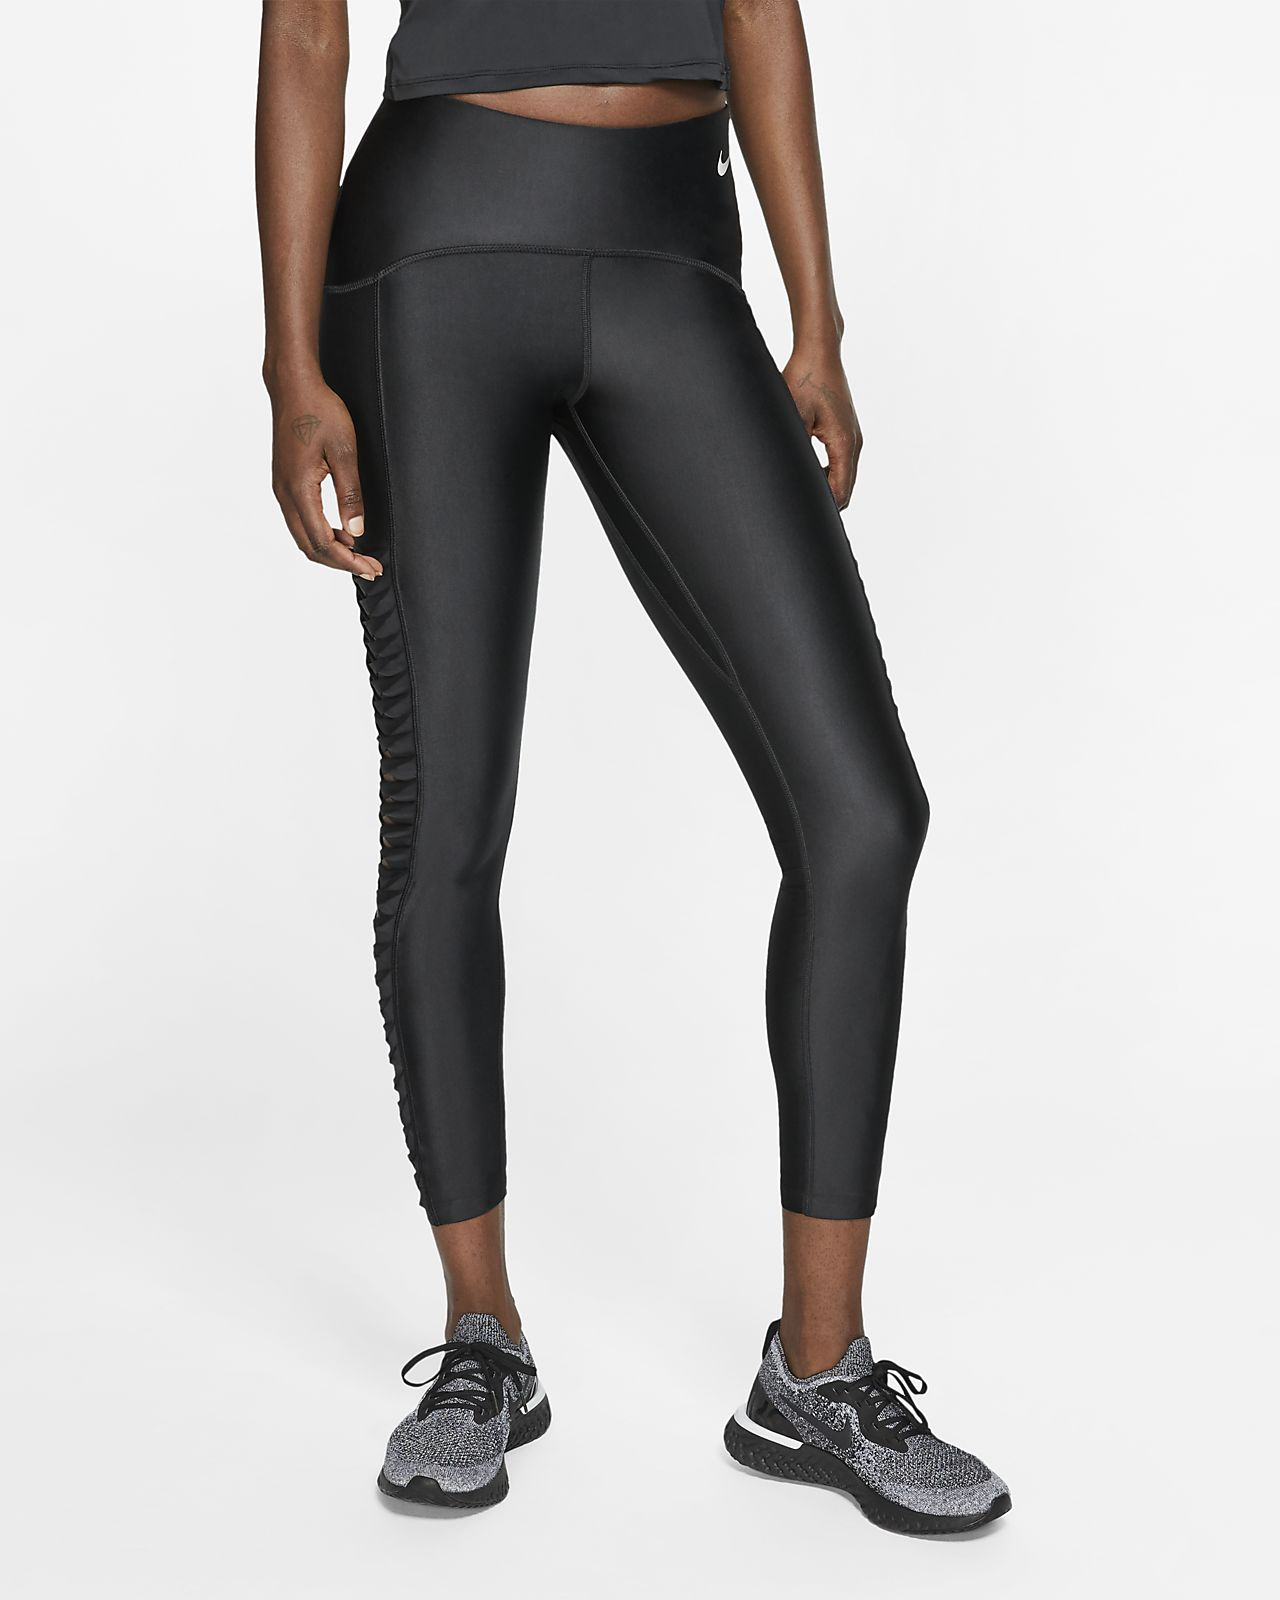 Leggings de running 7/8 Nike Speed pour Femme